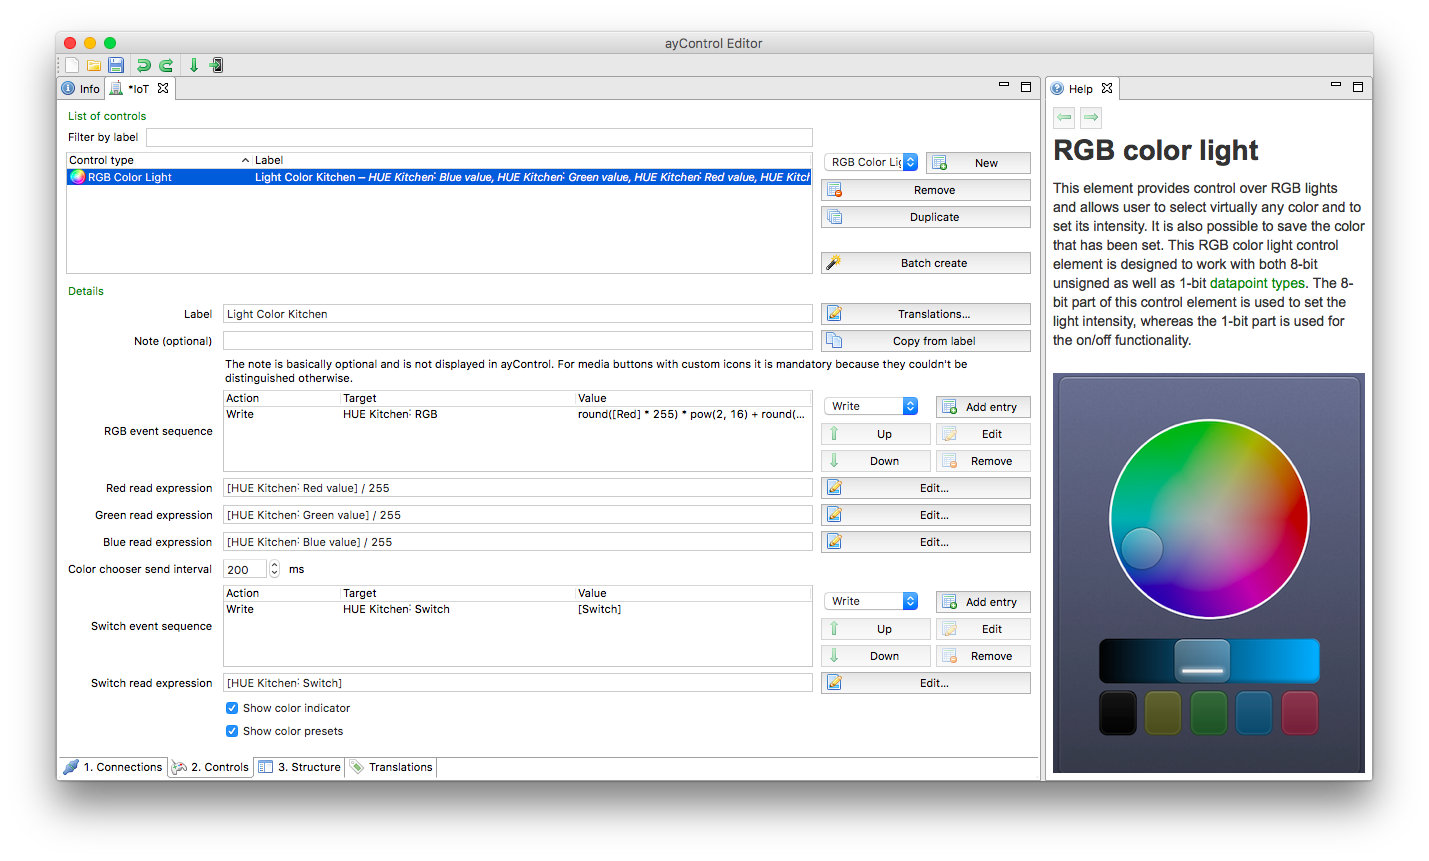 Overview of the Philips HUE configuration for the ayControl KNX Editor